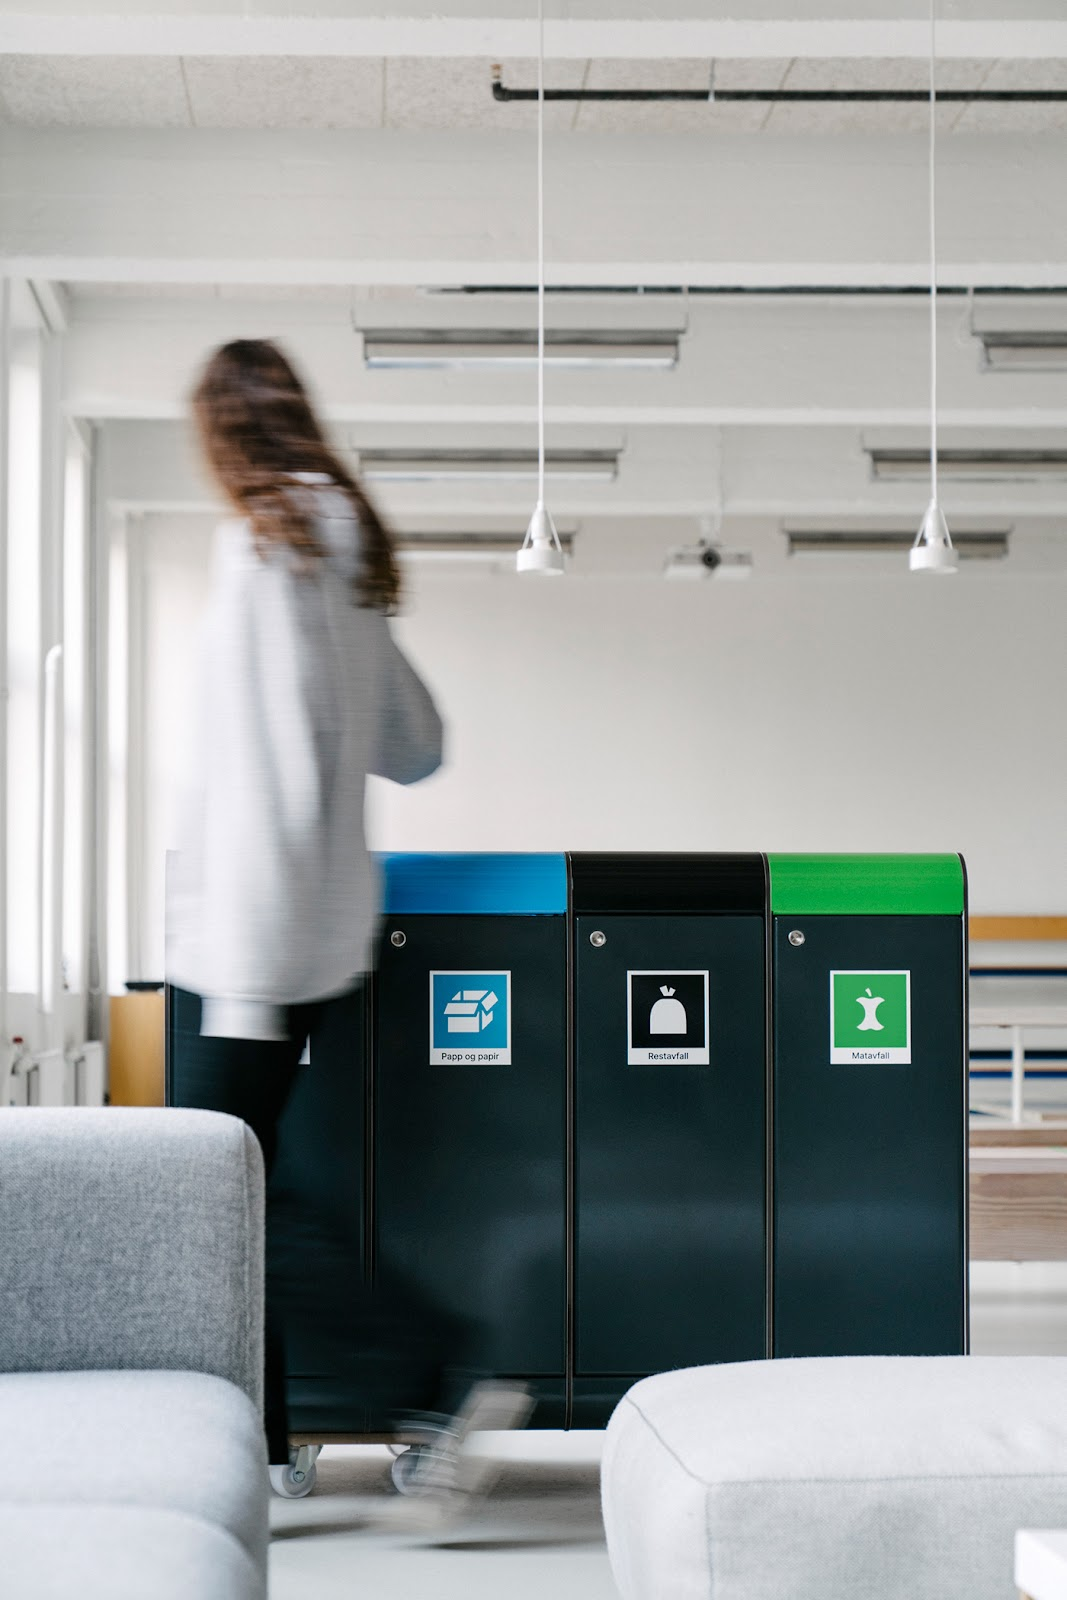 icons recycling system pictograms rational waste